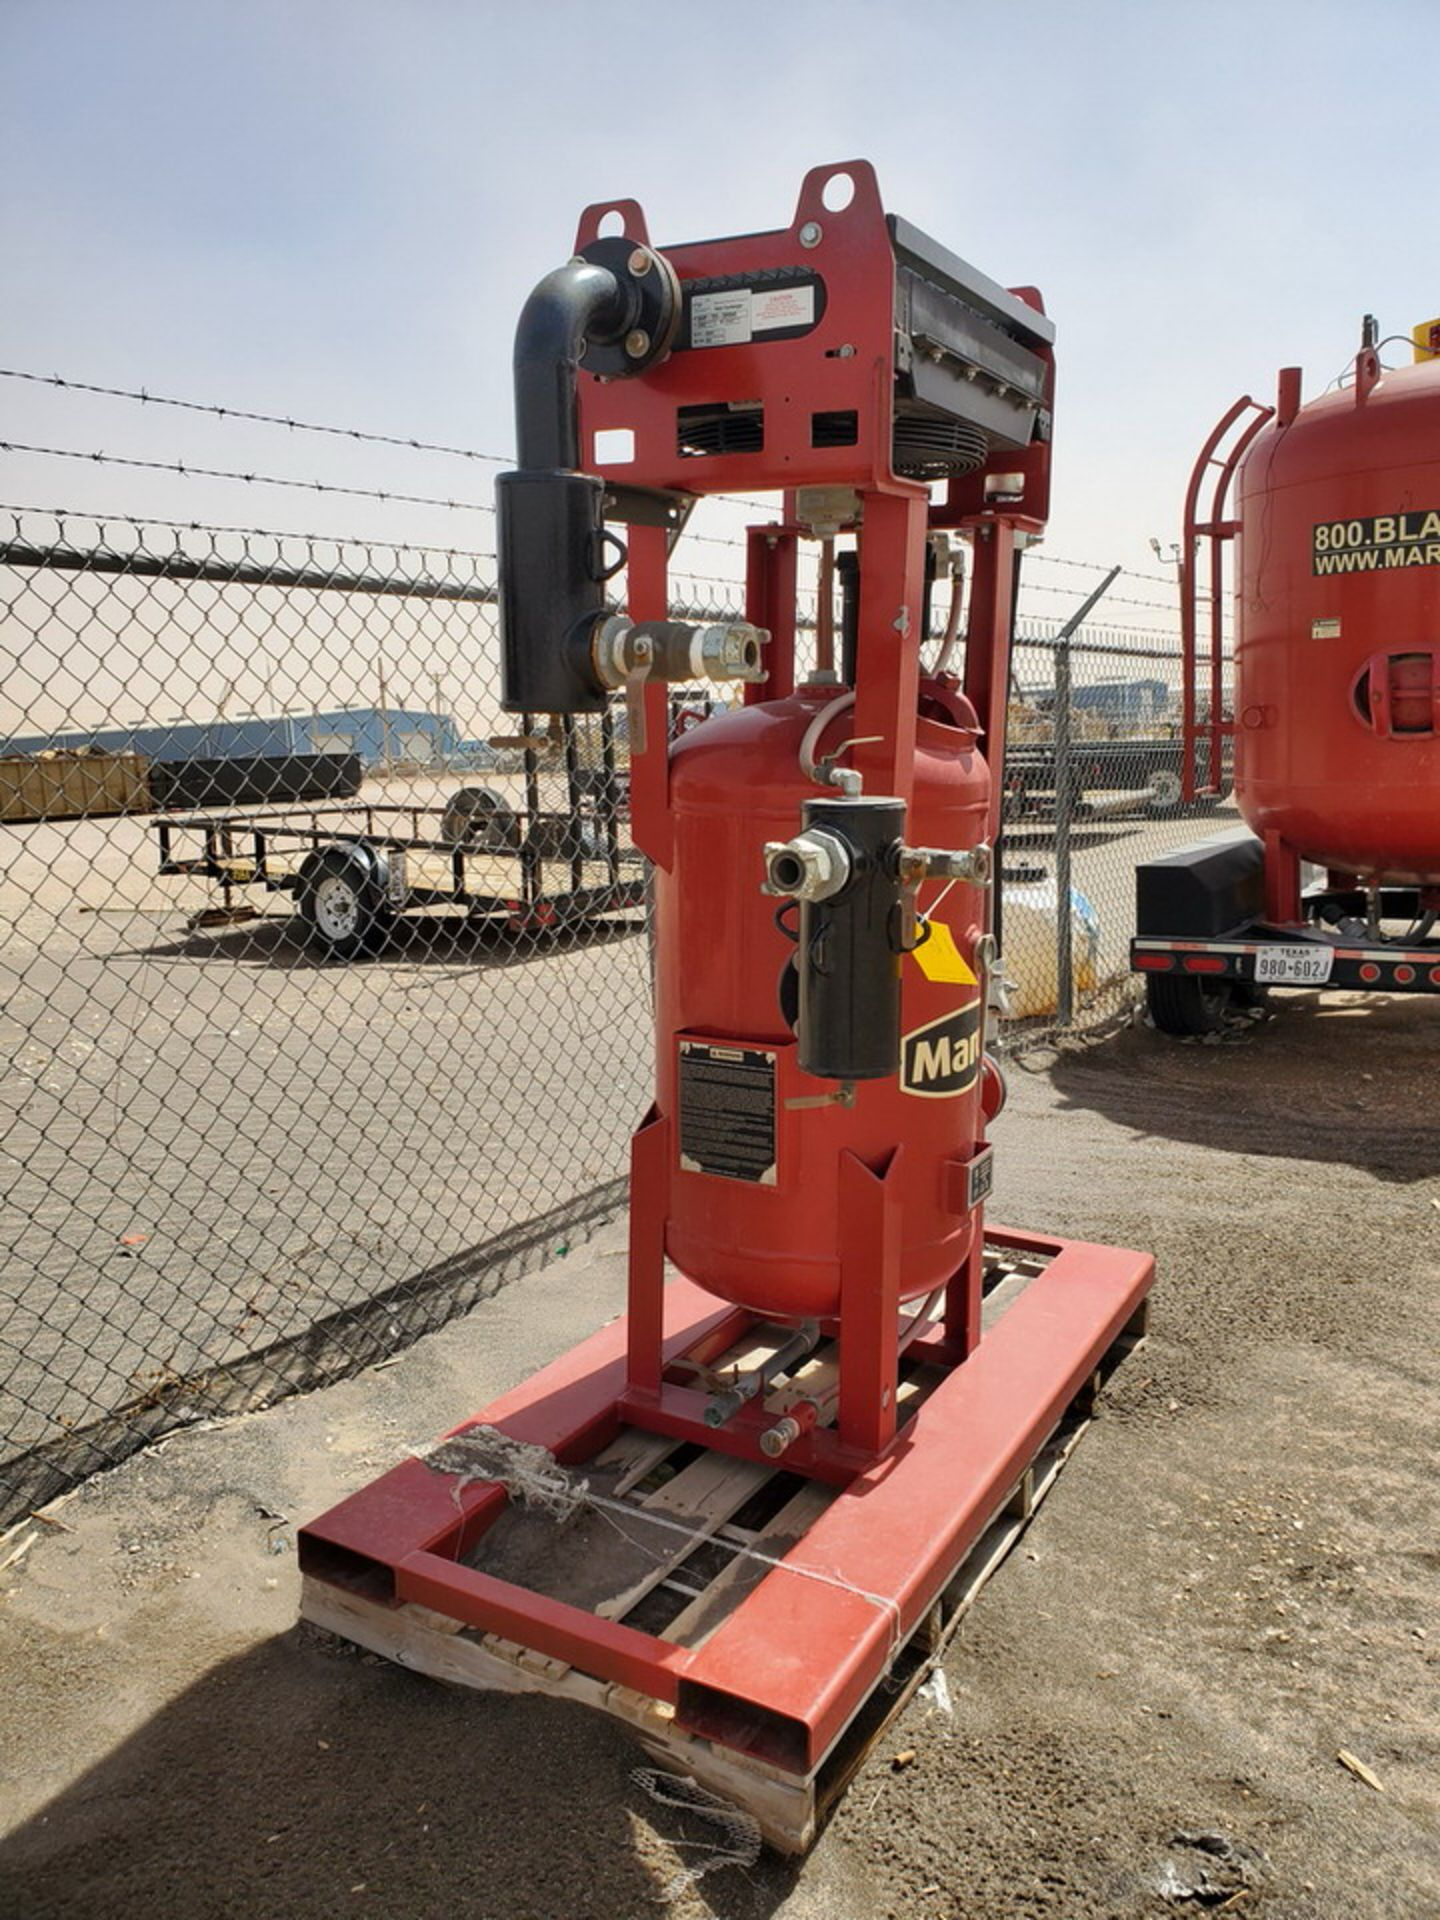 """2017 Marco Air Dryer 150psi@250F, -20@150psi, Vessel Dims: 30"""" Seam To Seam; Overall Dims: 72"""" x 35"""" - Image 3 of 11"""